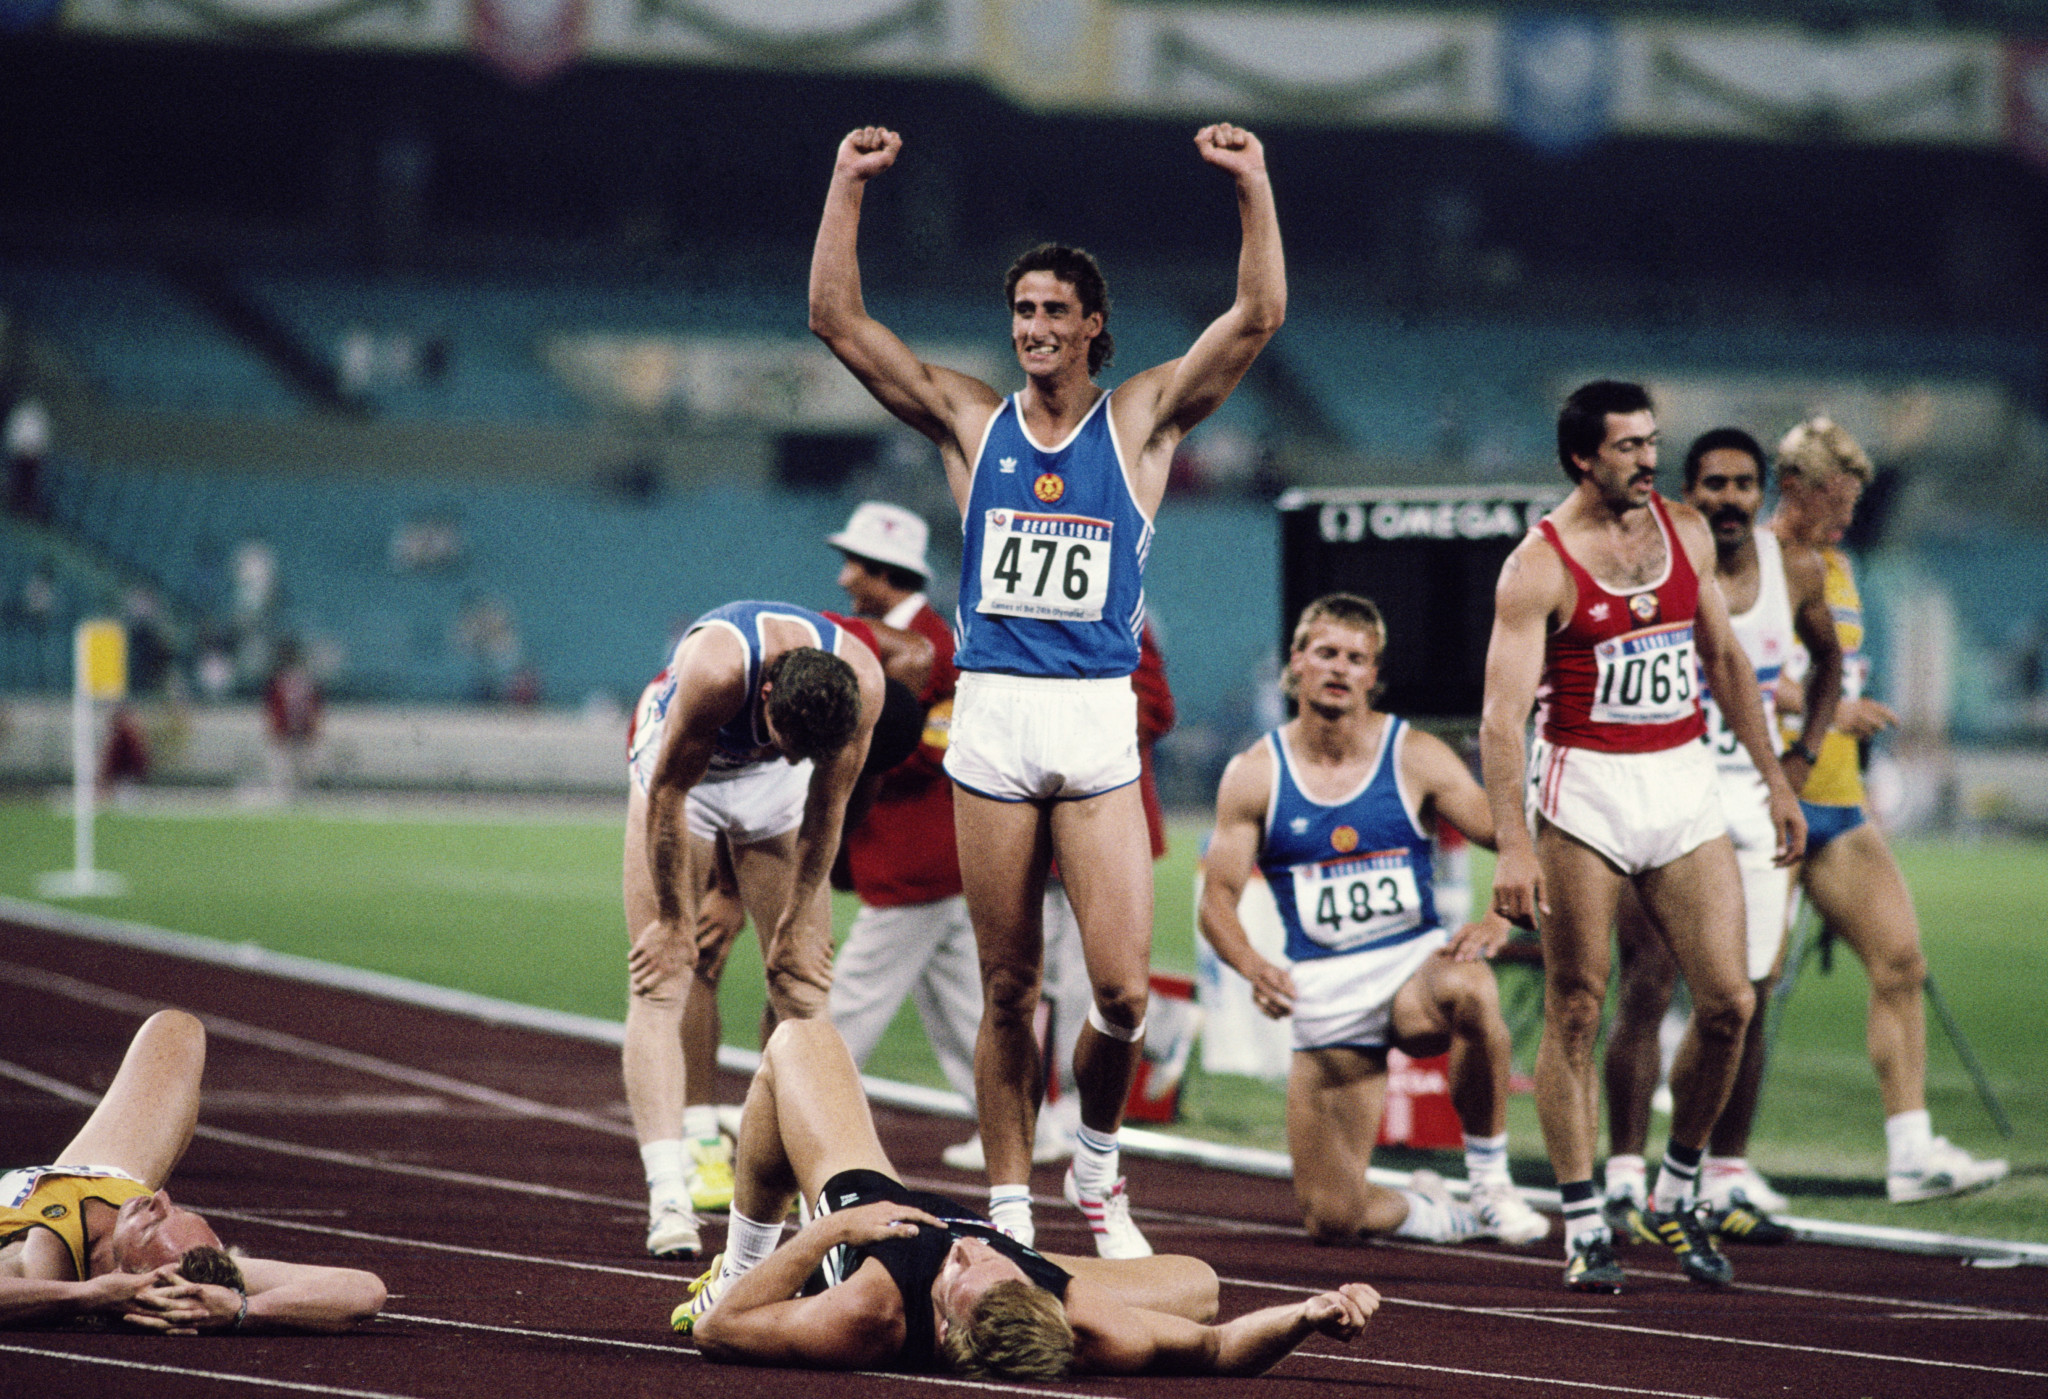 Christian Schenk will retain his gold medal from Seoul 1988 ©Getty Images